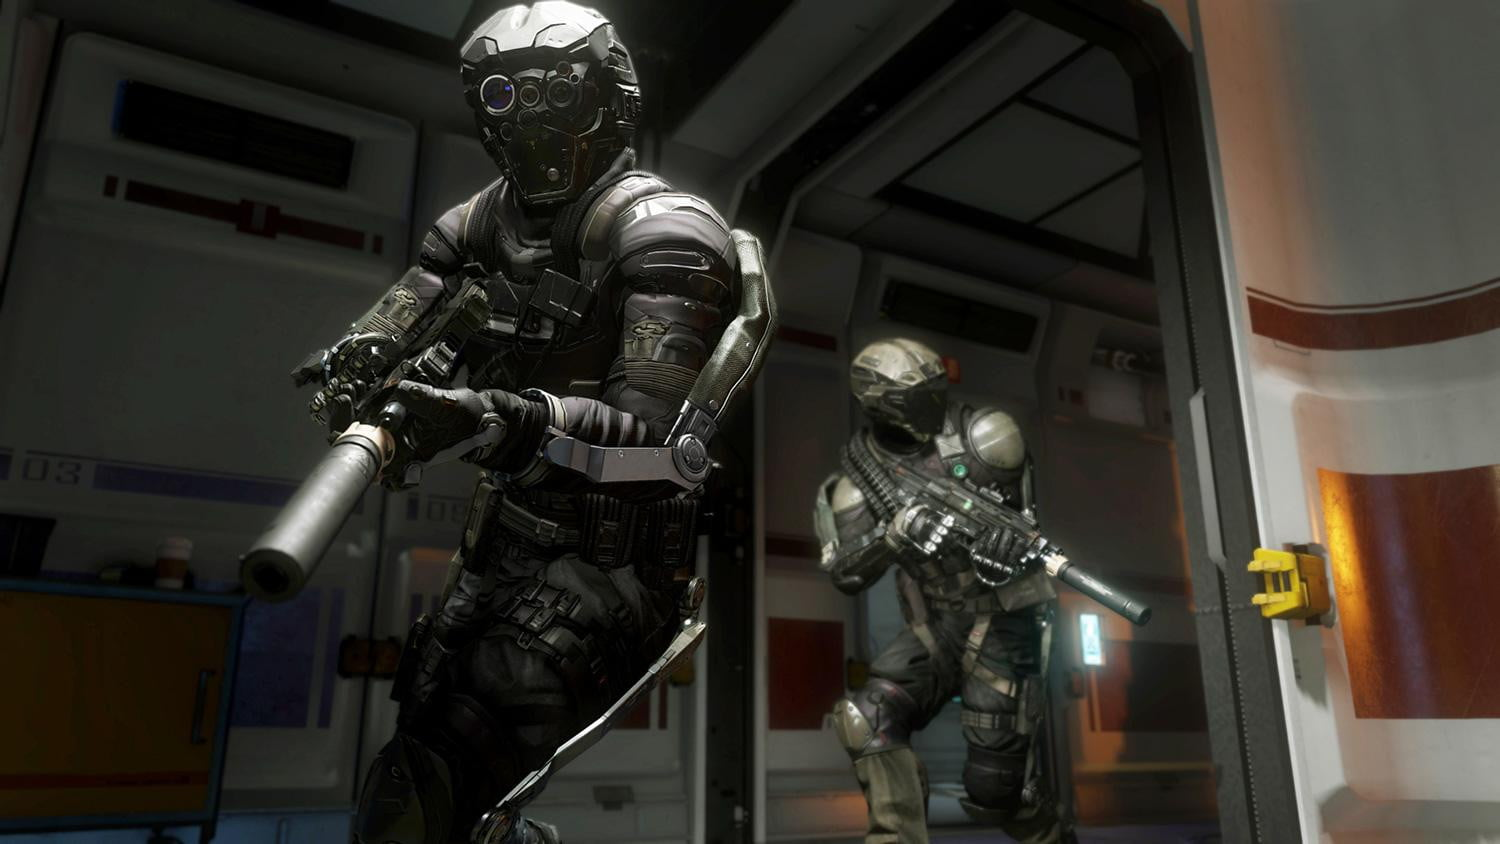 For some reason, Call of Duty: Advanced Warfare is now backward compatible on Xbox One screenshot